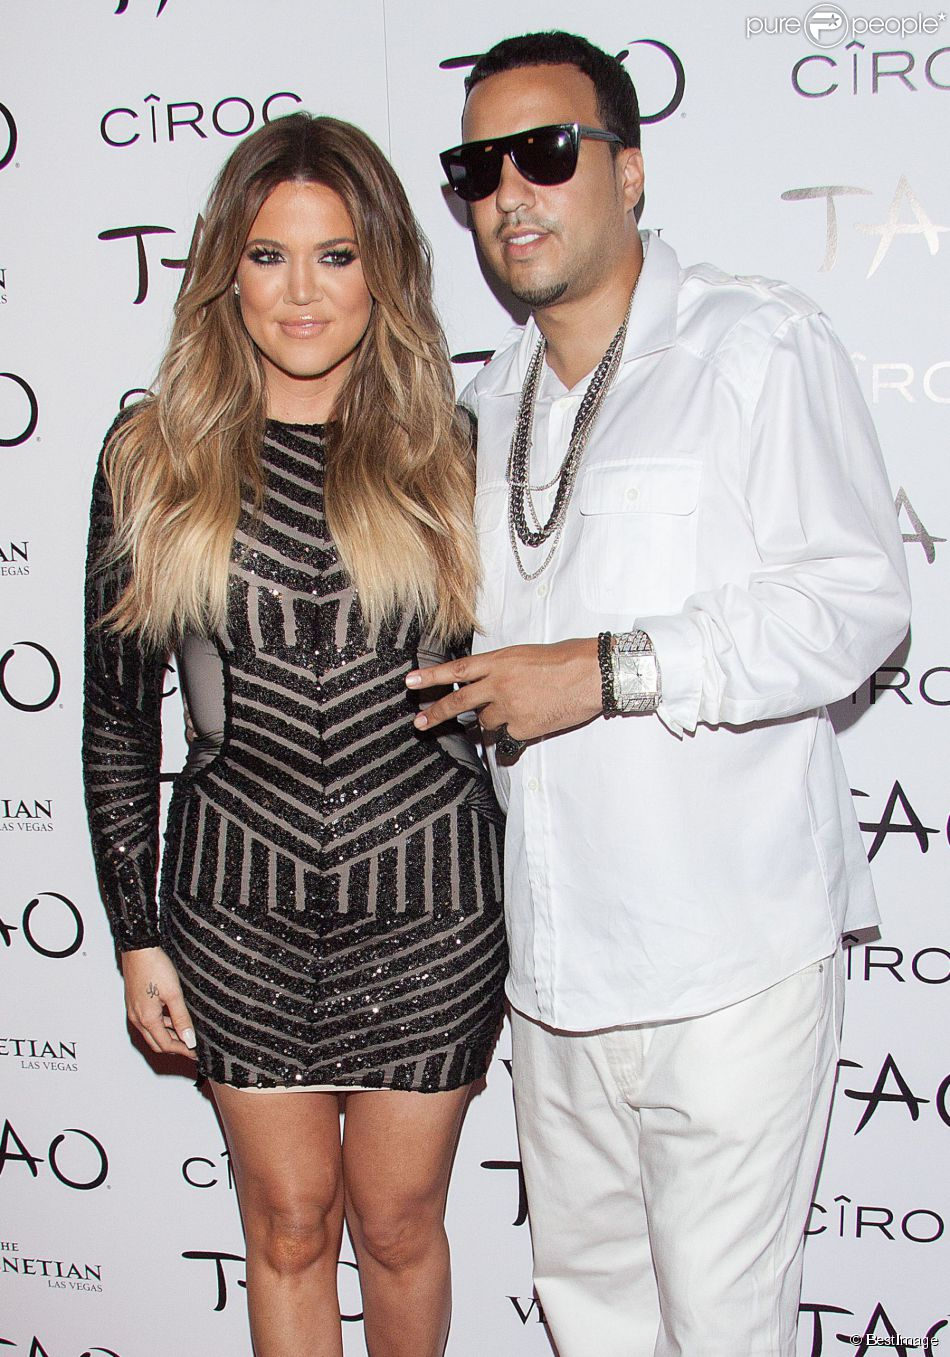 Khloe Kardashian couple